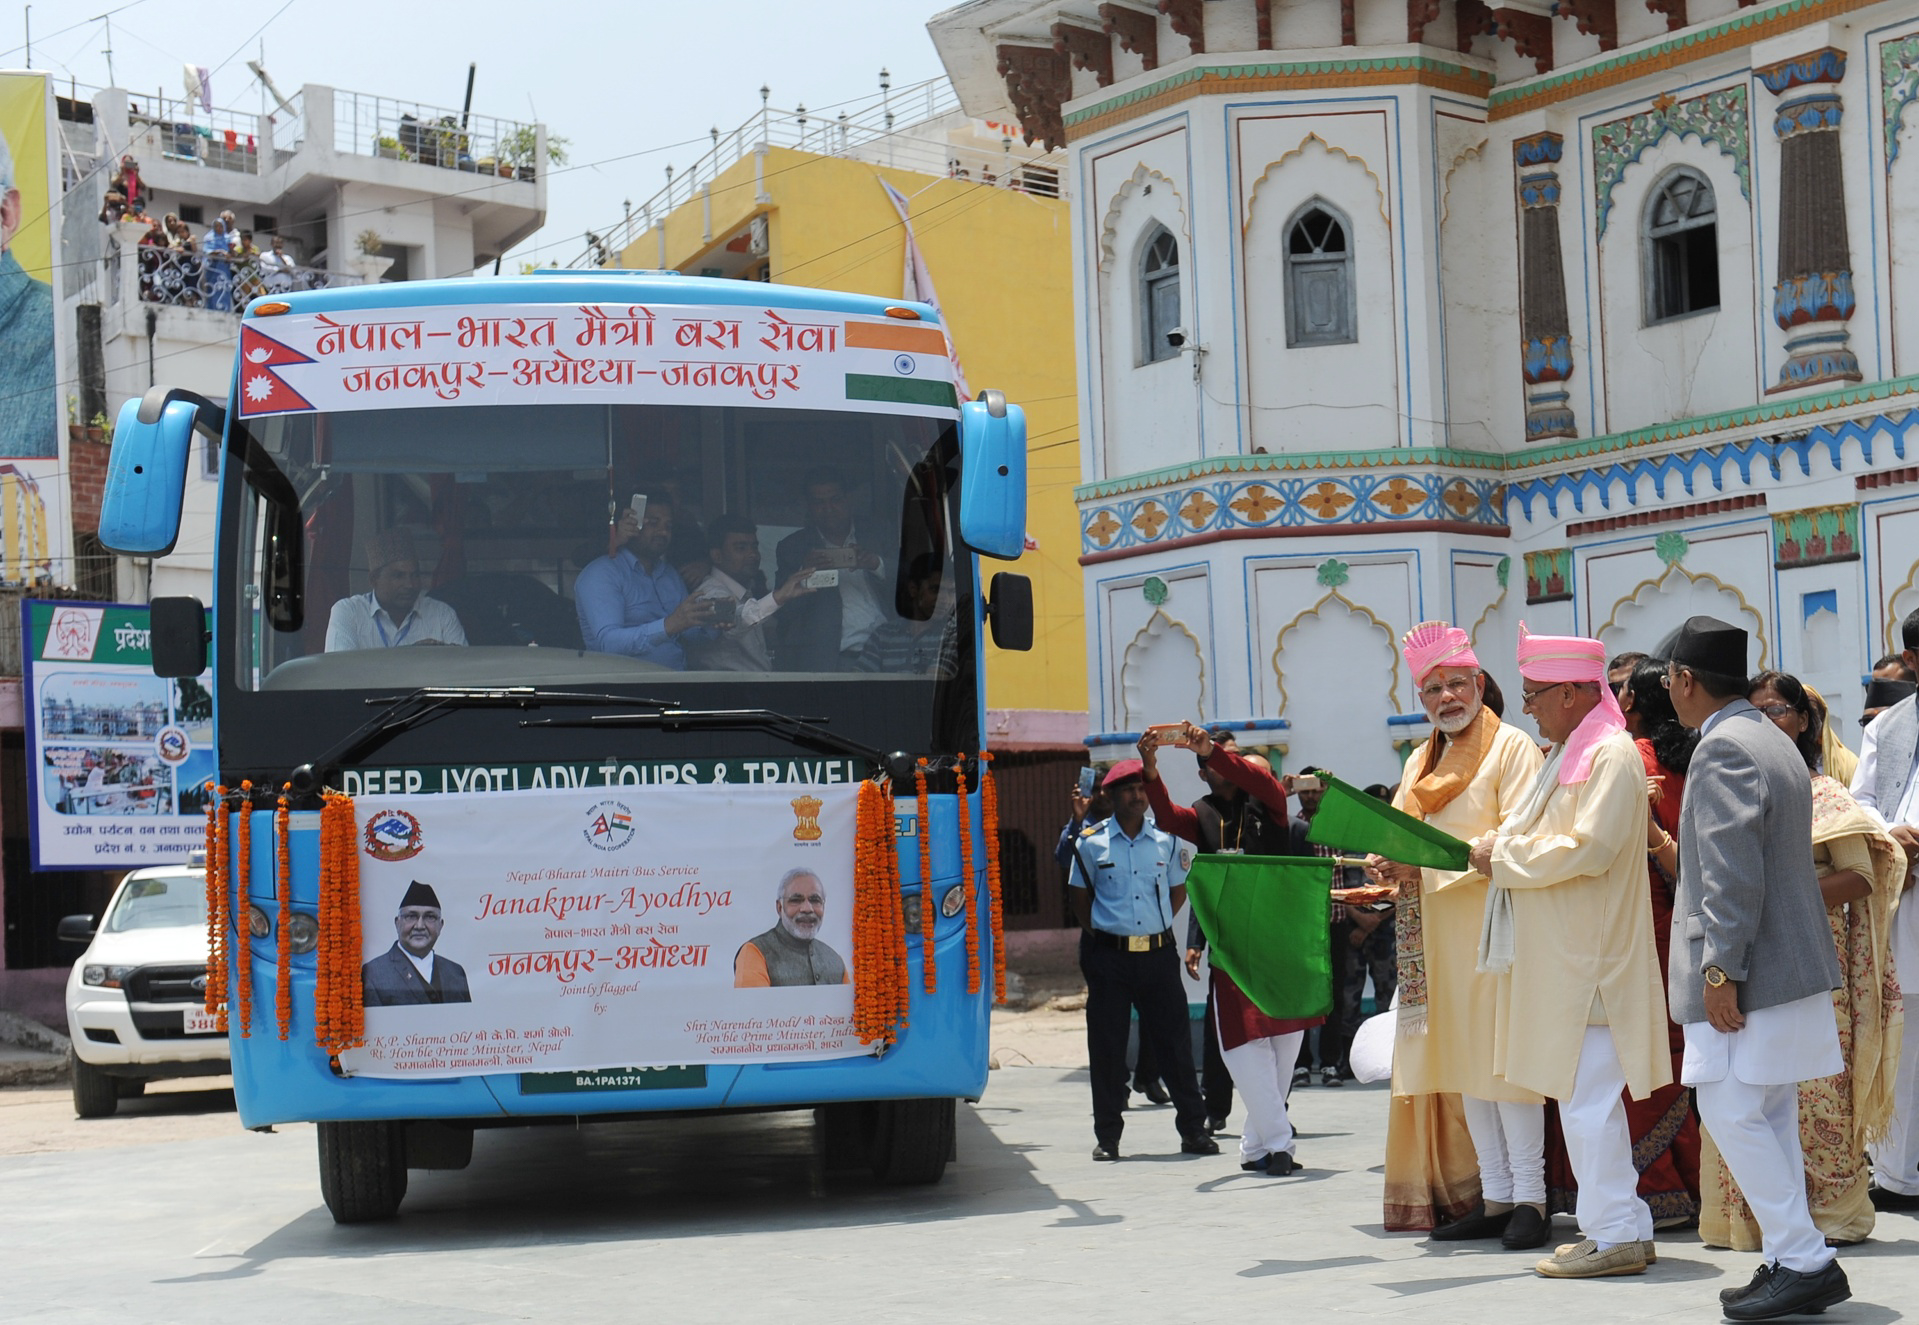 Indian CM welcomes flagged off bus from Janakpur at Ayodhya